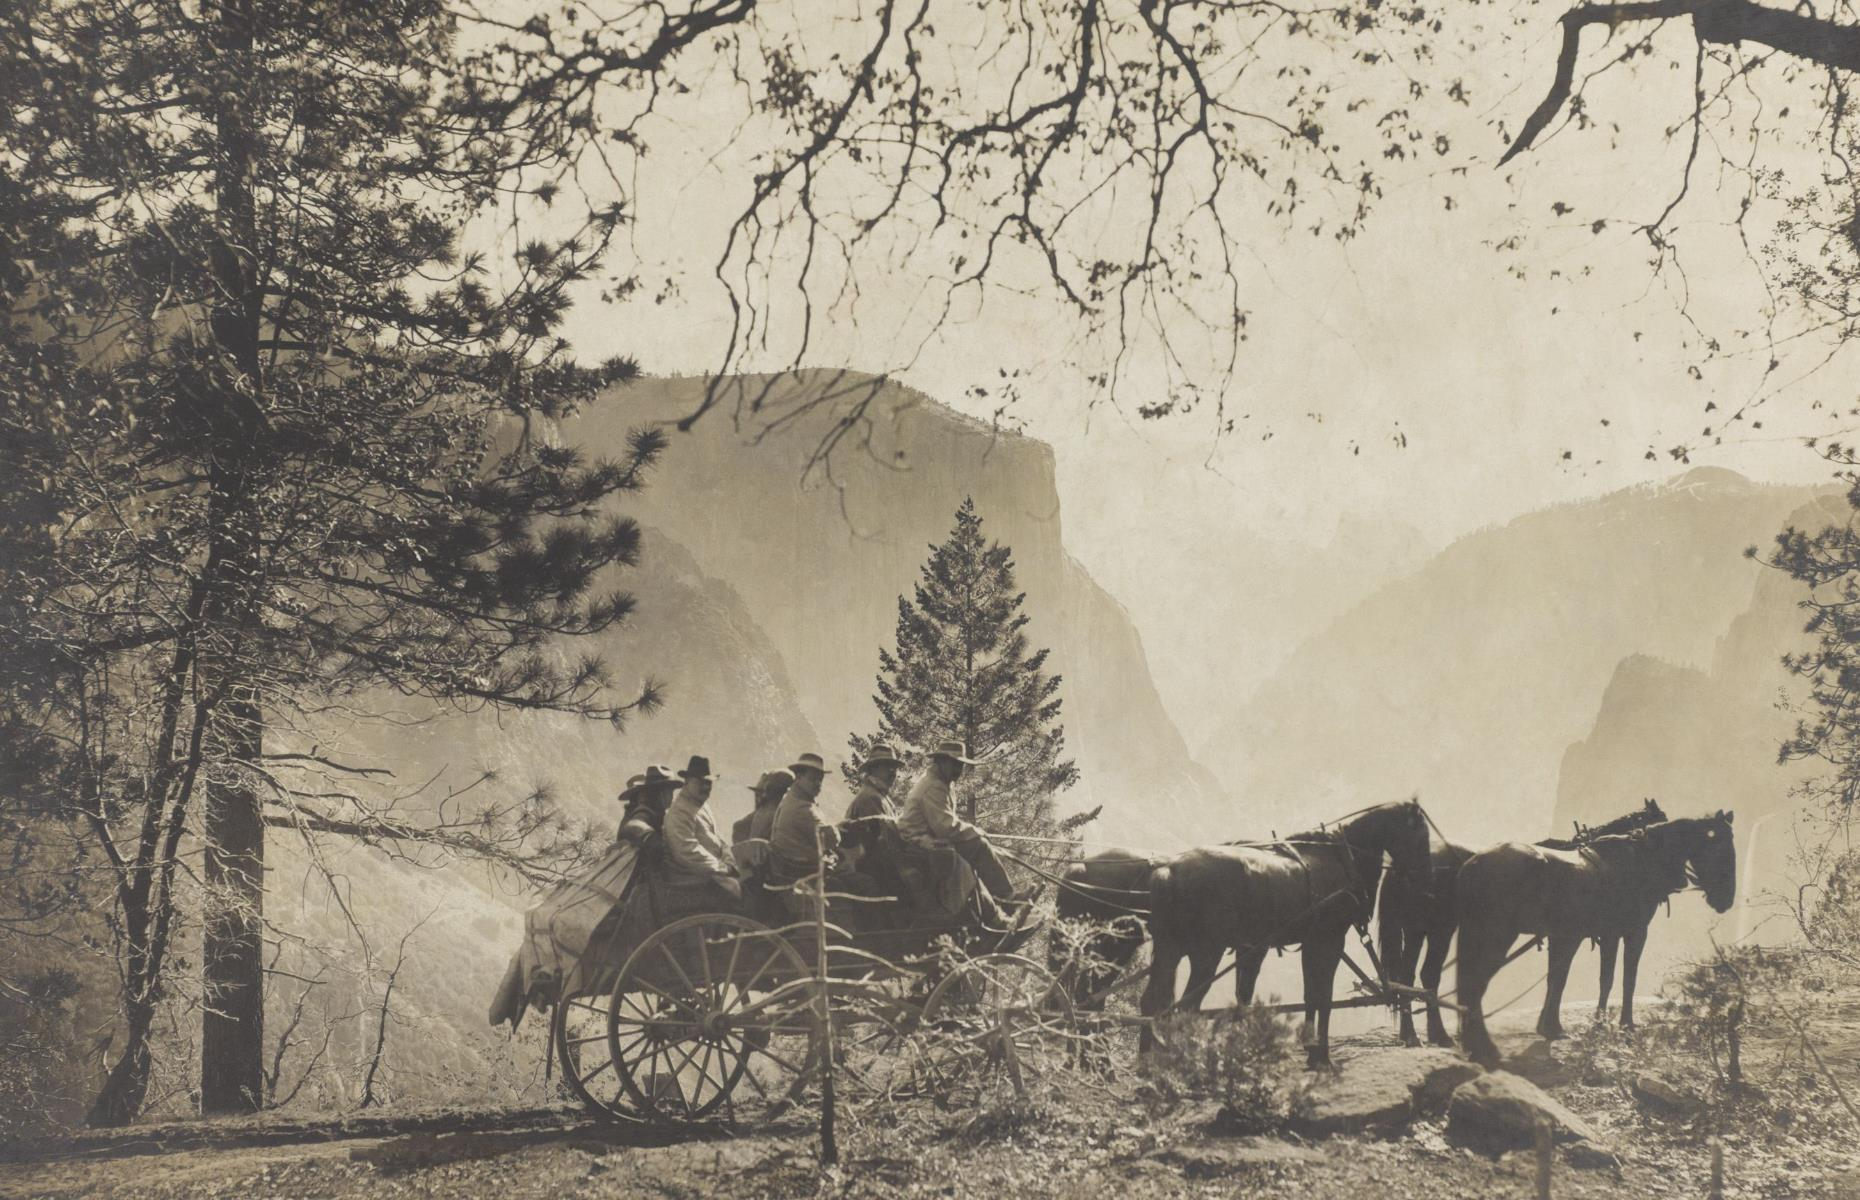 Slide 17 of 51: In this photograph, taken in 1903,Theodore Roosevelt visits Inspiration Point in the Yosemite Valley, accompanied by the well-known naturalist John Muir. Parts of the area were established as a State Park in 1864 before a National Park was confirmed in 1890, although it wasn't until 1906 that the parks were merged to create Yosemite National Park as we know it today. Tourism has risen significantly in the past 75 years: one million people visited the park for the first time in 1954, two million in 1976, and double that amount by the 1990s.